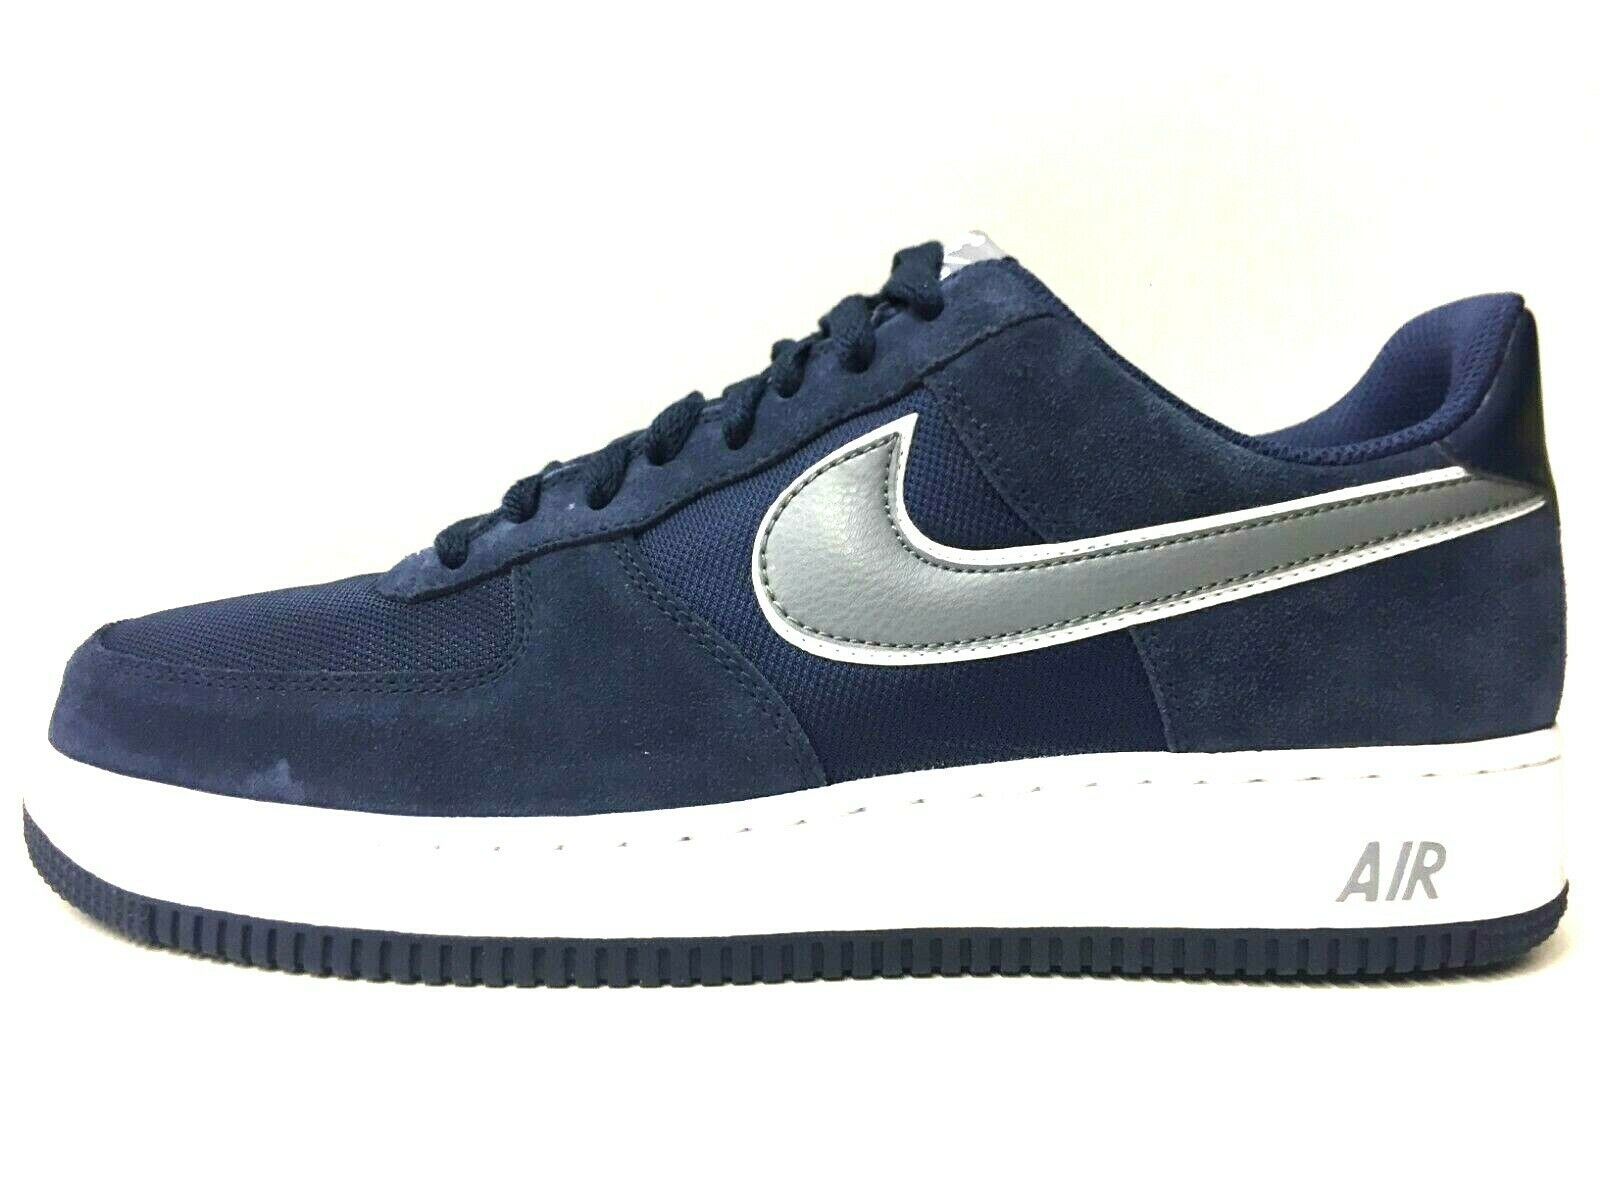 SCARPE SNEAKERS UOMO NIKE ORIGINALE AIR FORCE 1 488298 PELLE P/E NUOVO